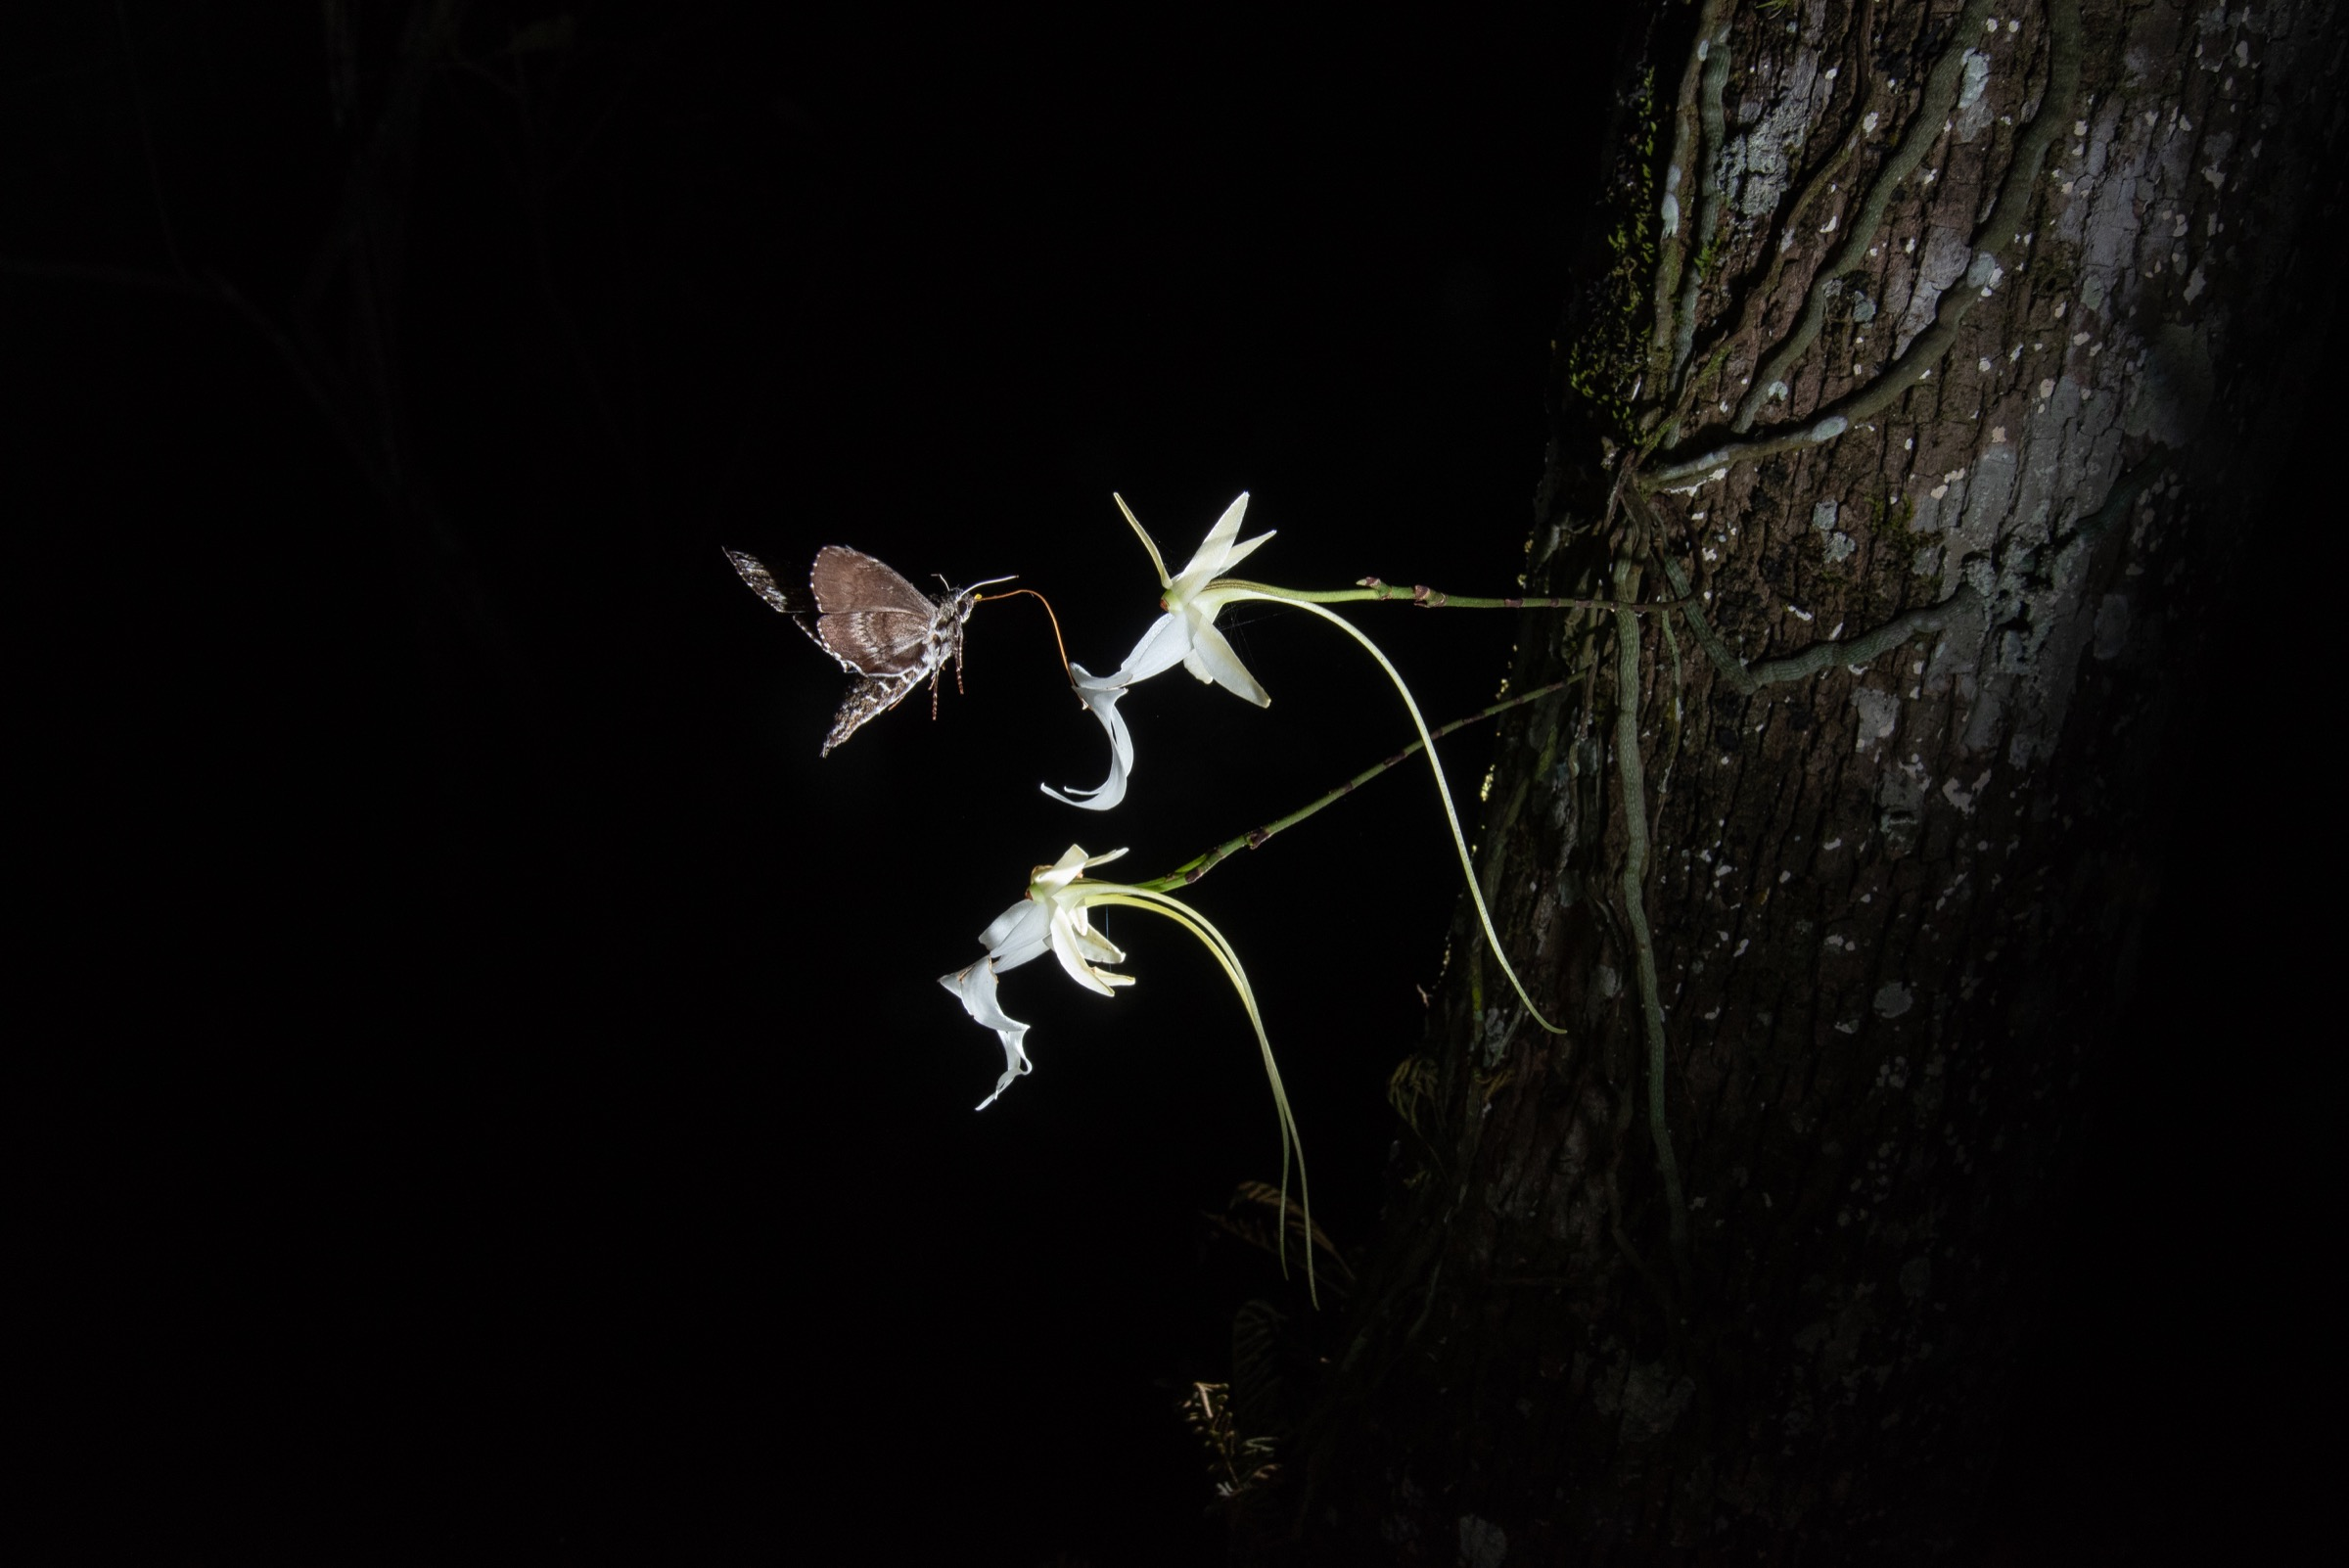 This photo, captured in the summer of 2018, was the first to show a pawpaw sphinx moth probing and likely pollinating a ghost orchid bloom. A pollinium (pollen cluster) from the ghost orchid is visible on the moth's head. Photograph by Carlton Ward Jr.